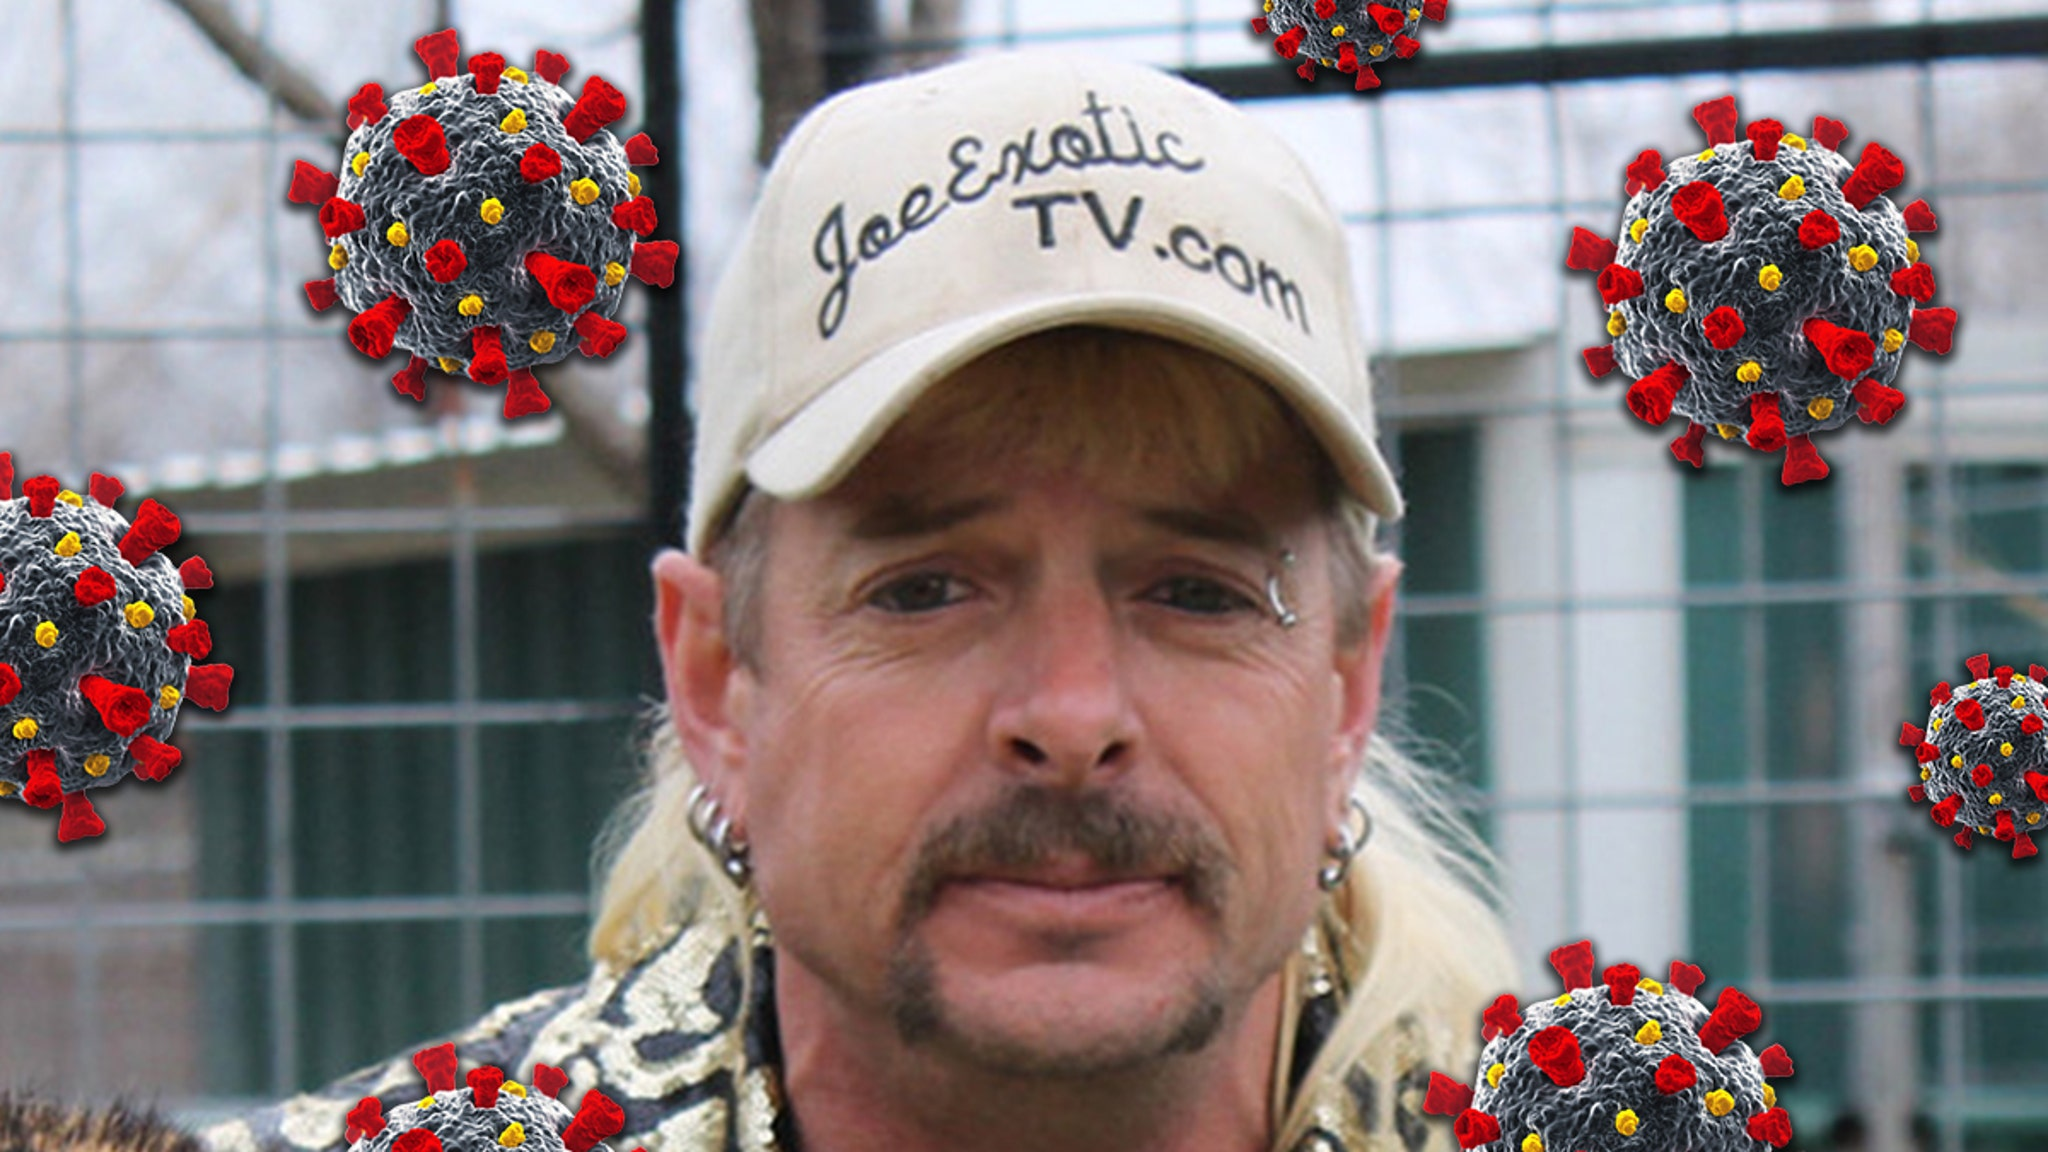 Joe Exotic Says He'd Rather Die from COVID Than Go On Life Support – TMZ